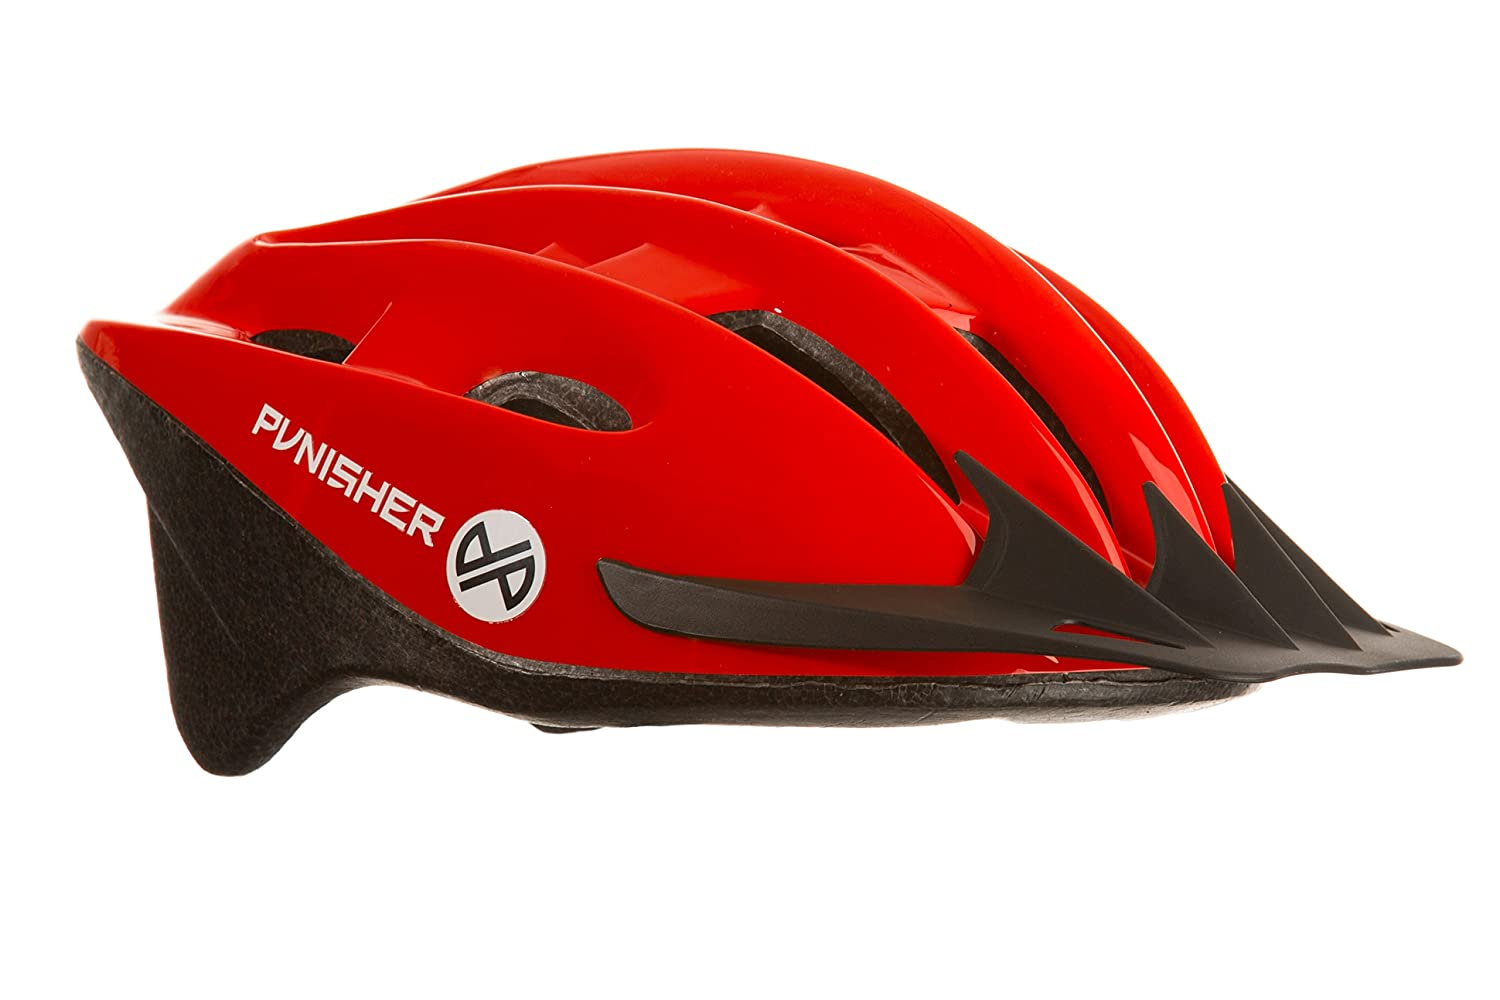 Punisher Skateboards Adult Mens 18-Vent Cycling Helmet with Abs Shell/Detachable Visor, Red 9238